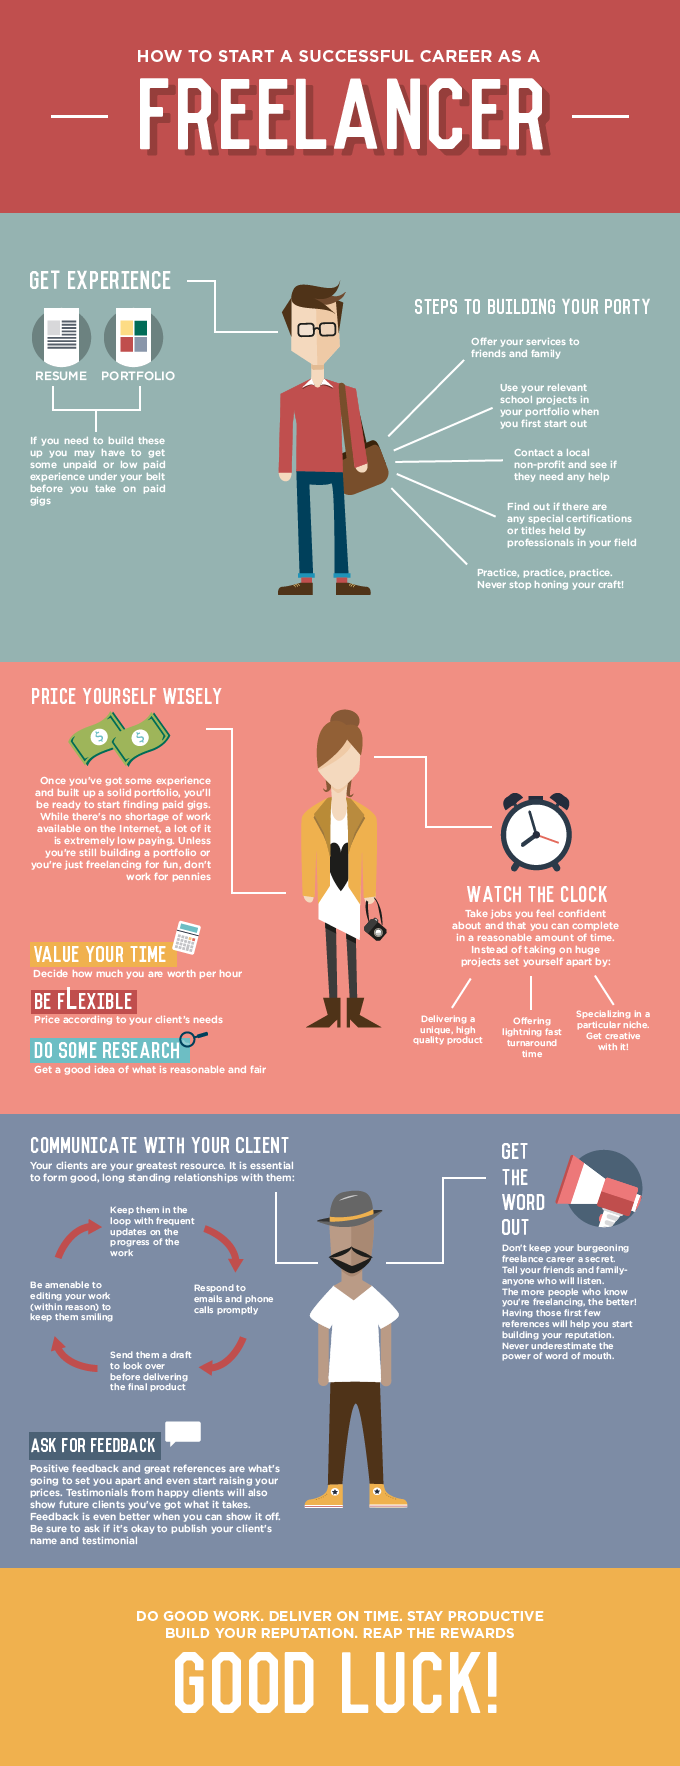 How-to-start-a-successful-career-as-a-freelancer